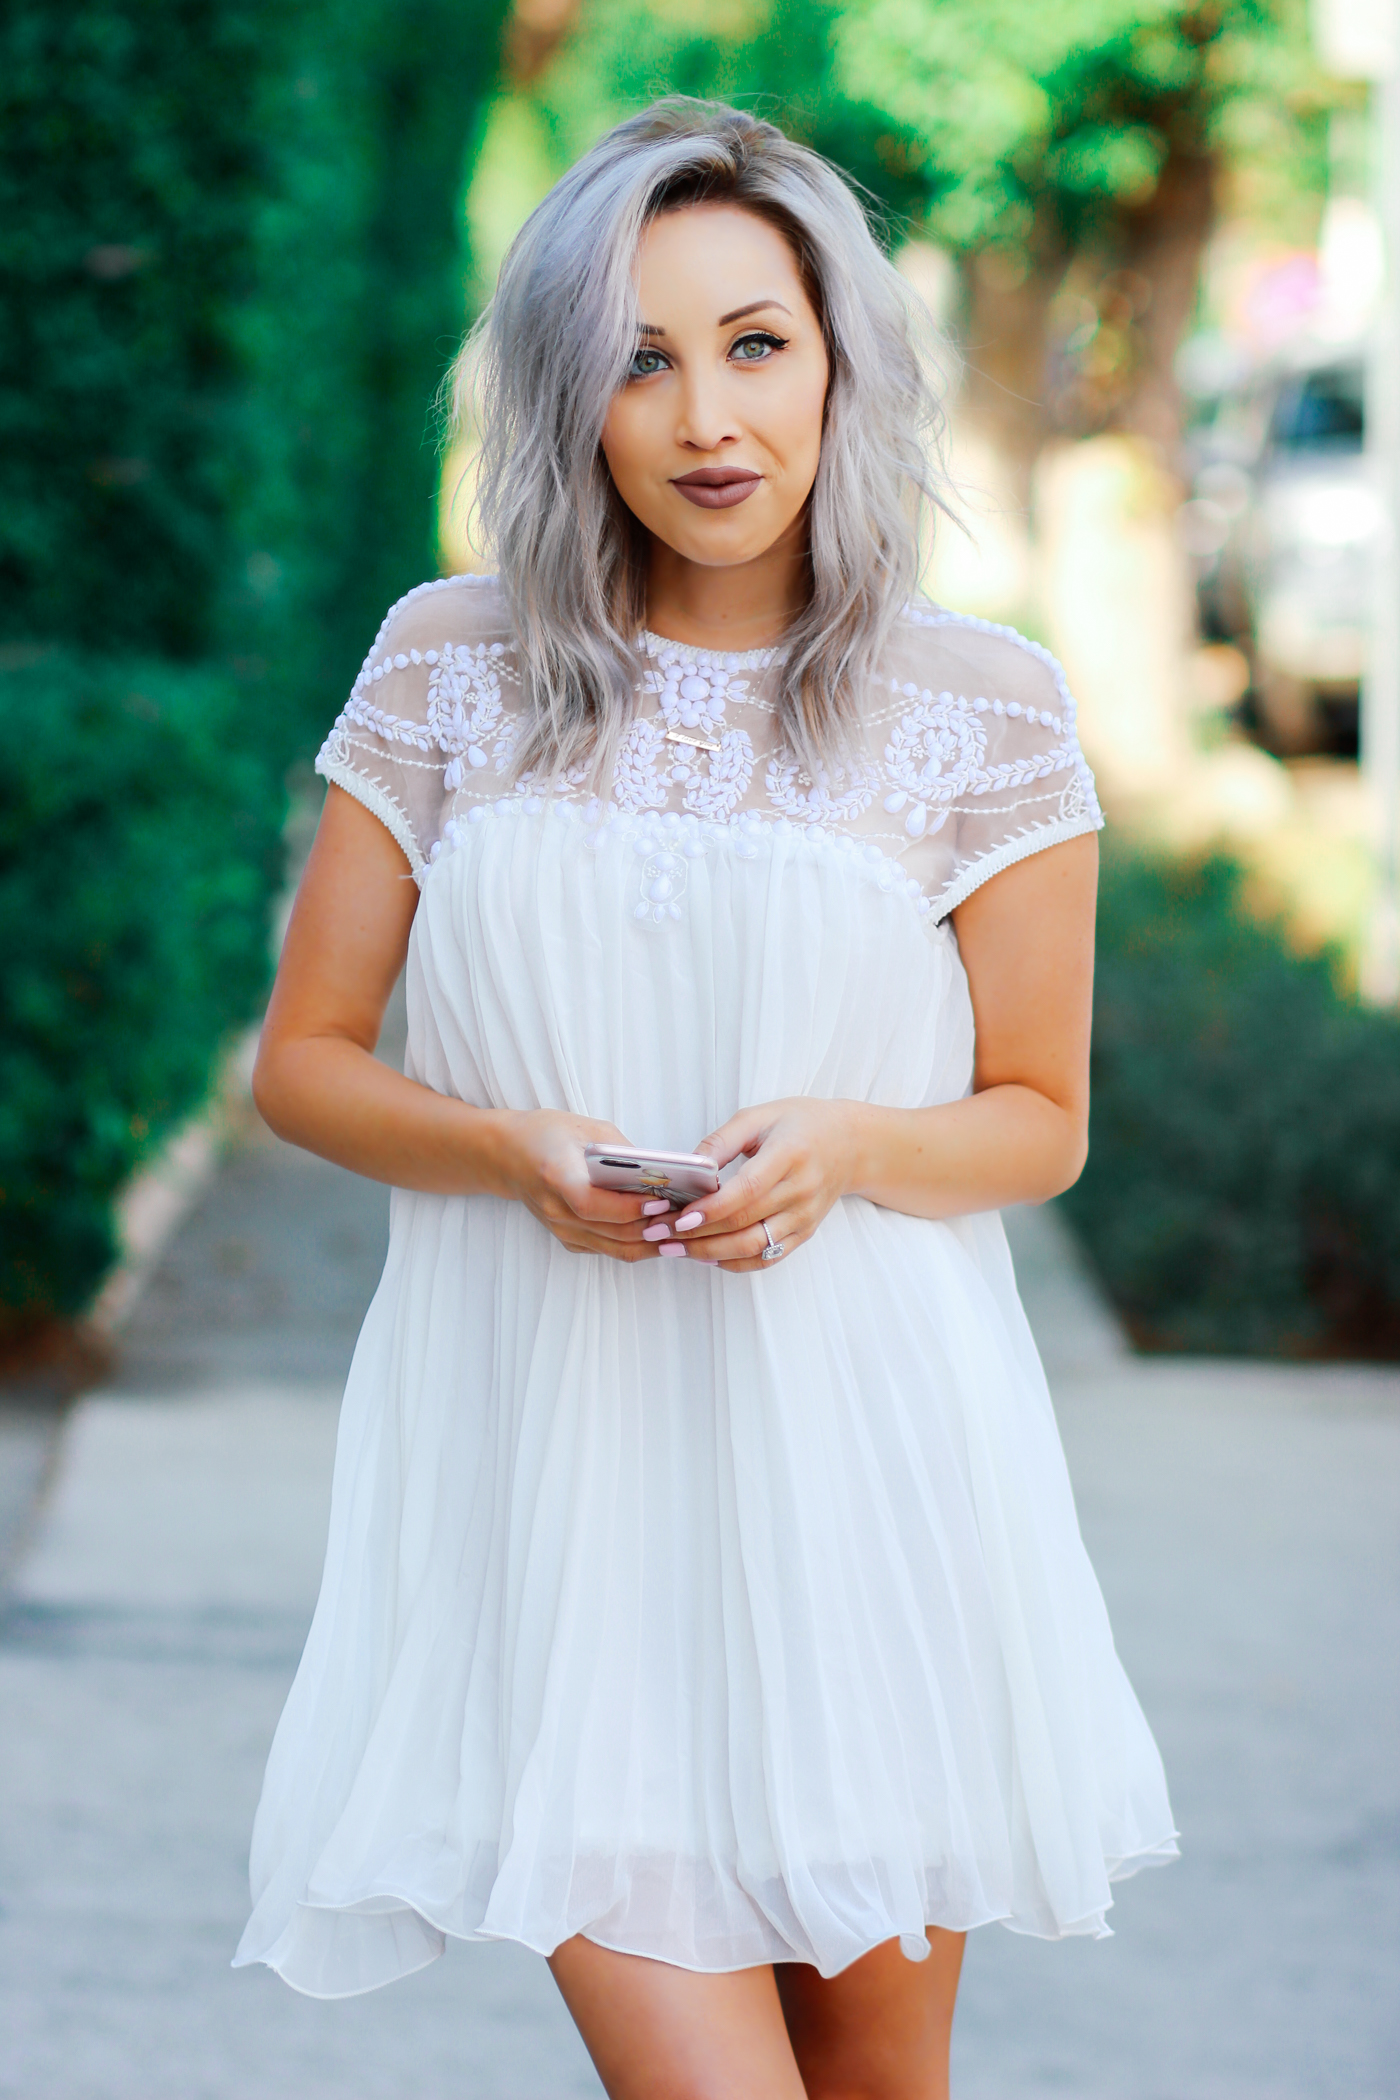 Don't Know What To Wear To Your Bridal Shower? Here Are 5 Dresses I've Worn That Would Be Perfect | The 5 White Dresses That Are Perfect For Your Bridal Shower